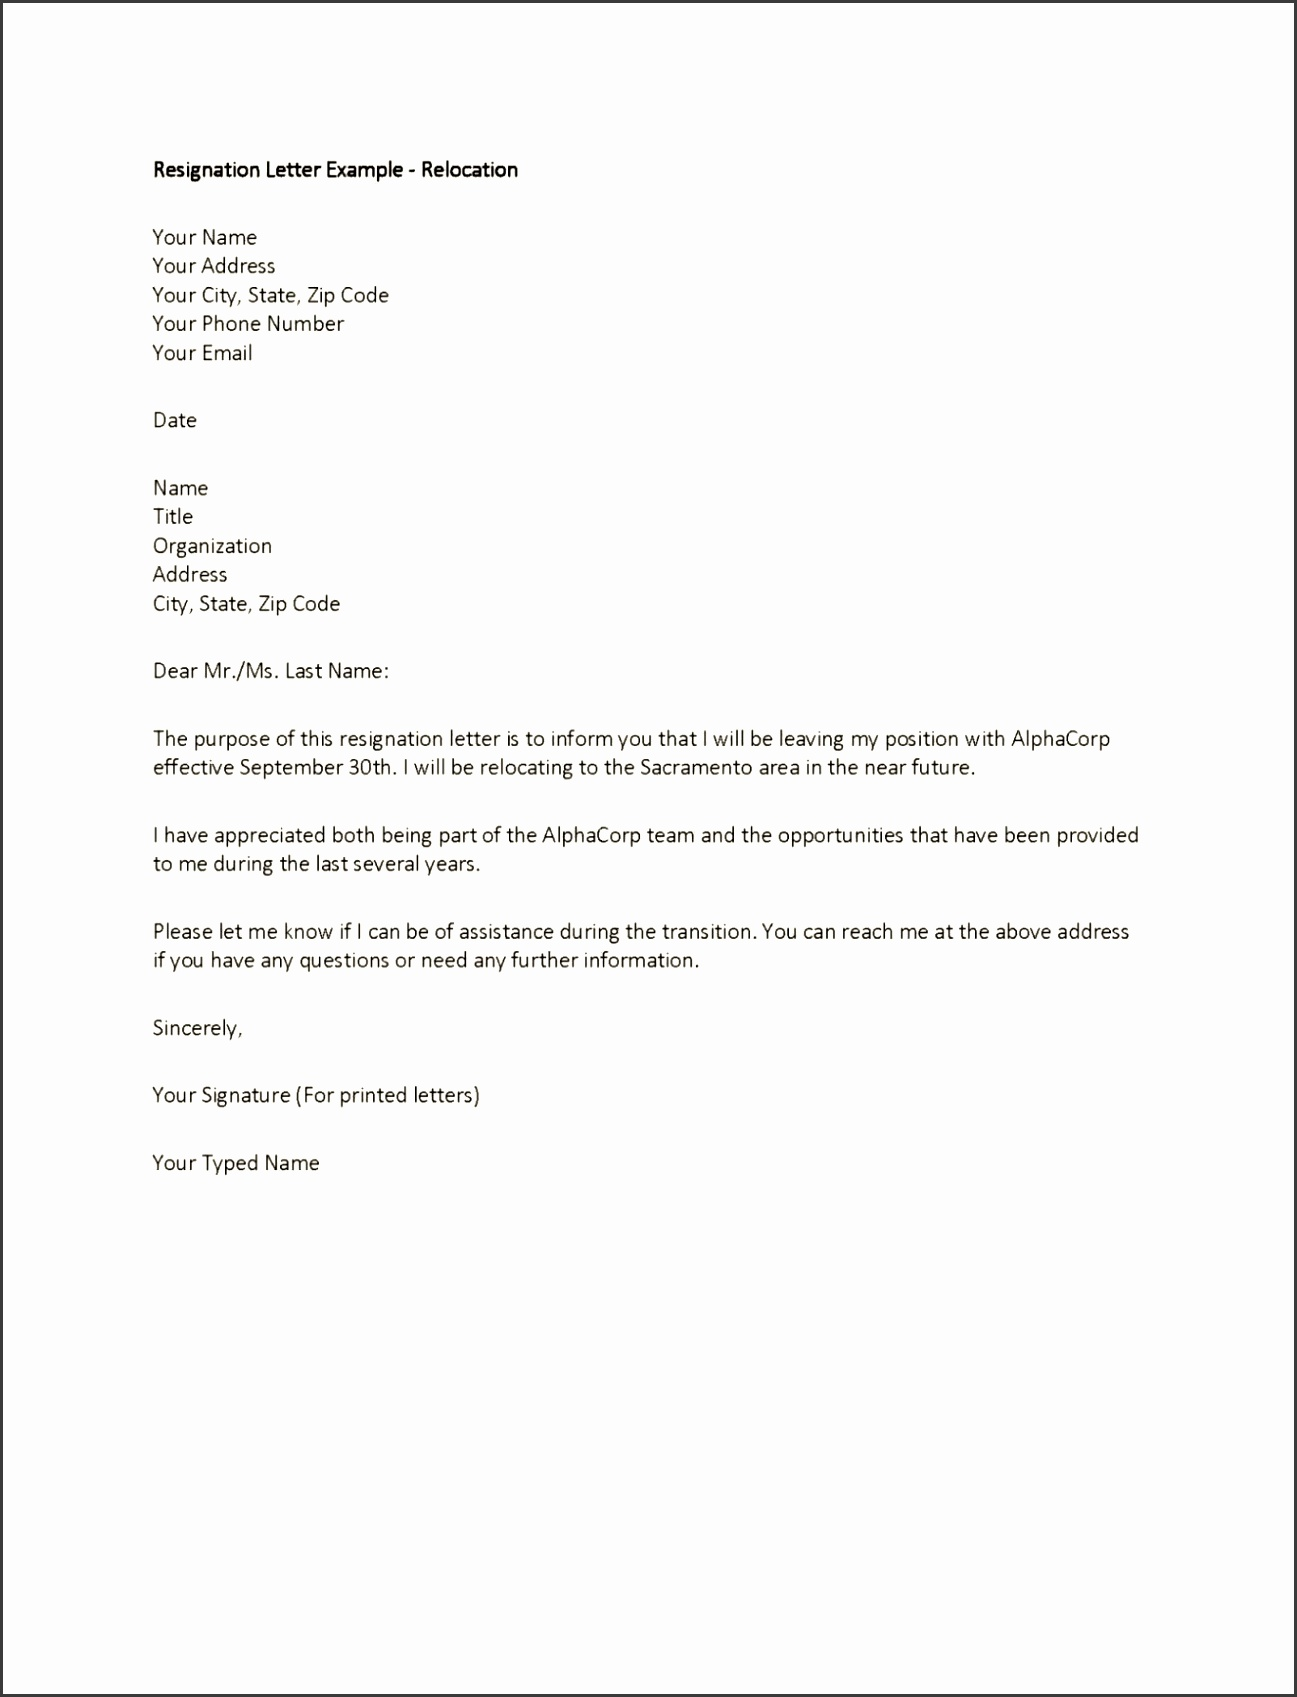 Employment Letter Template Singapore